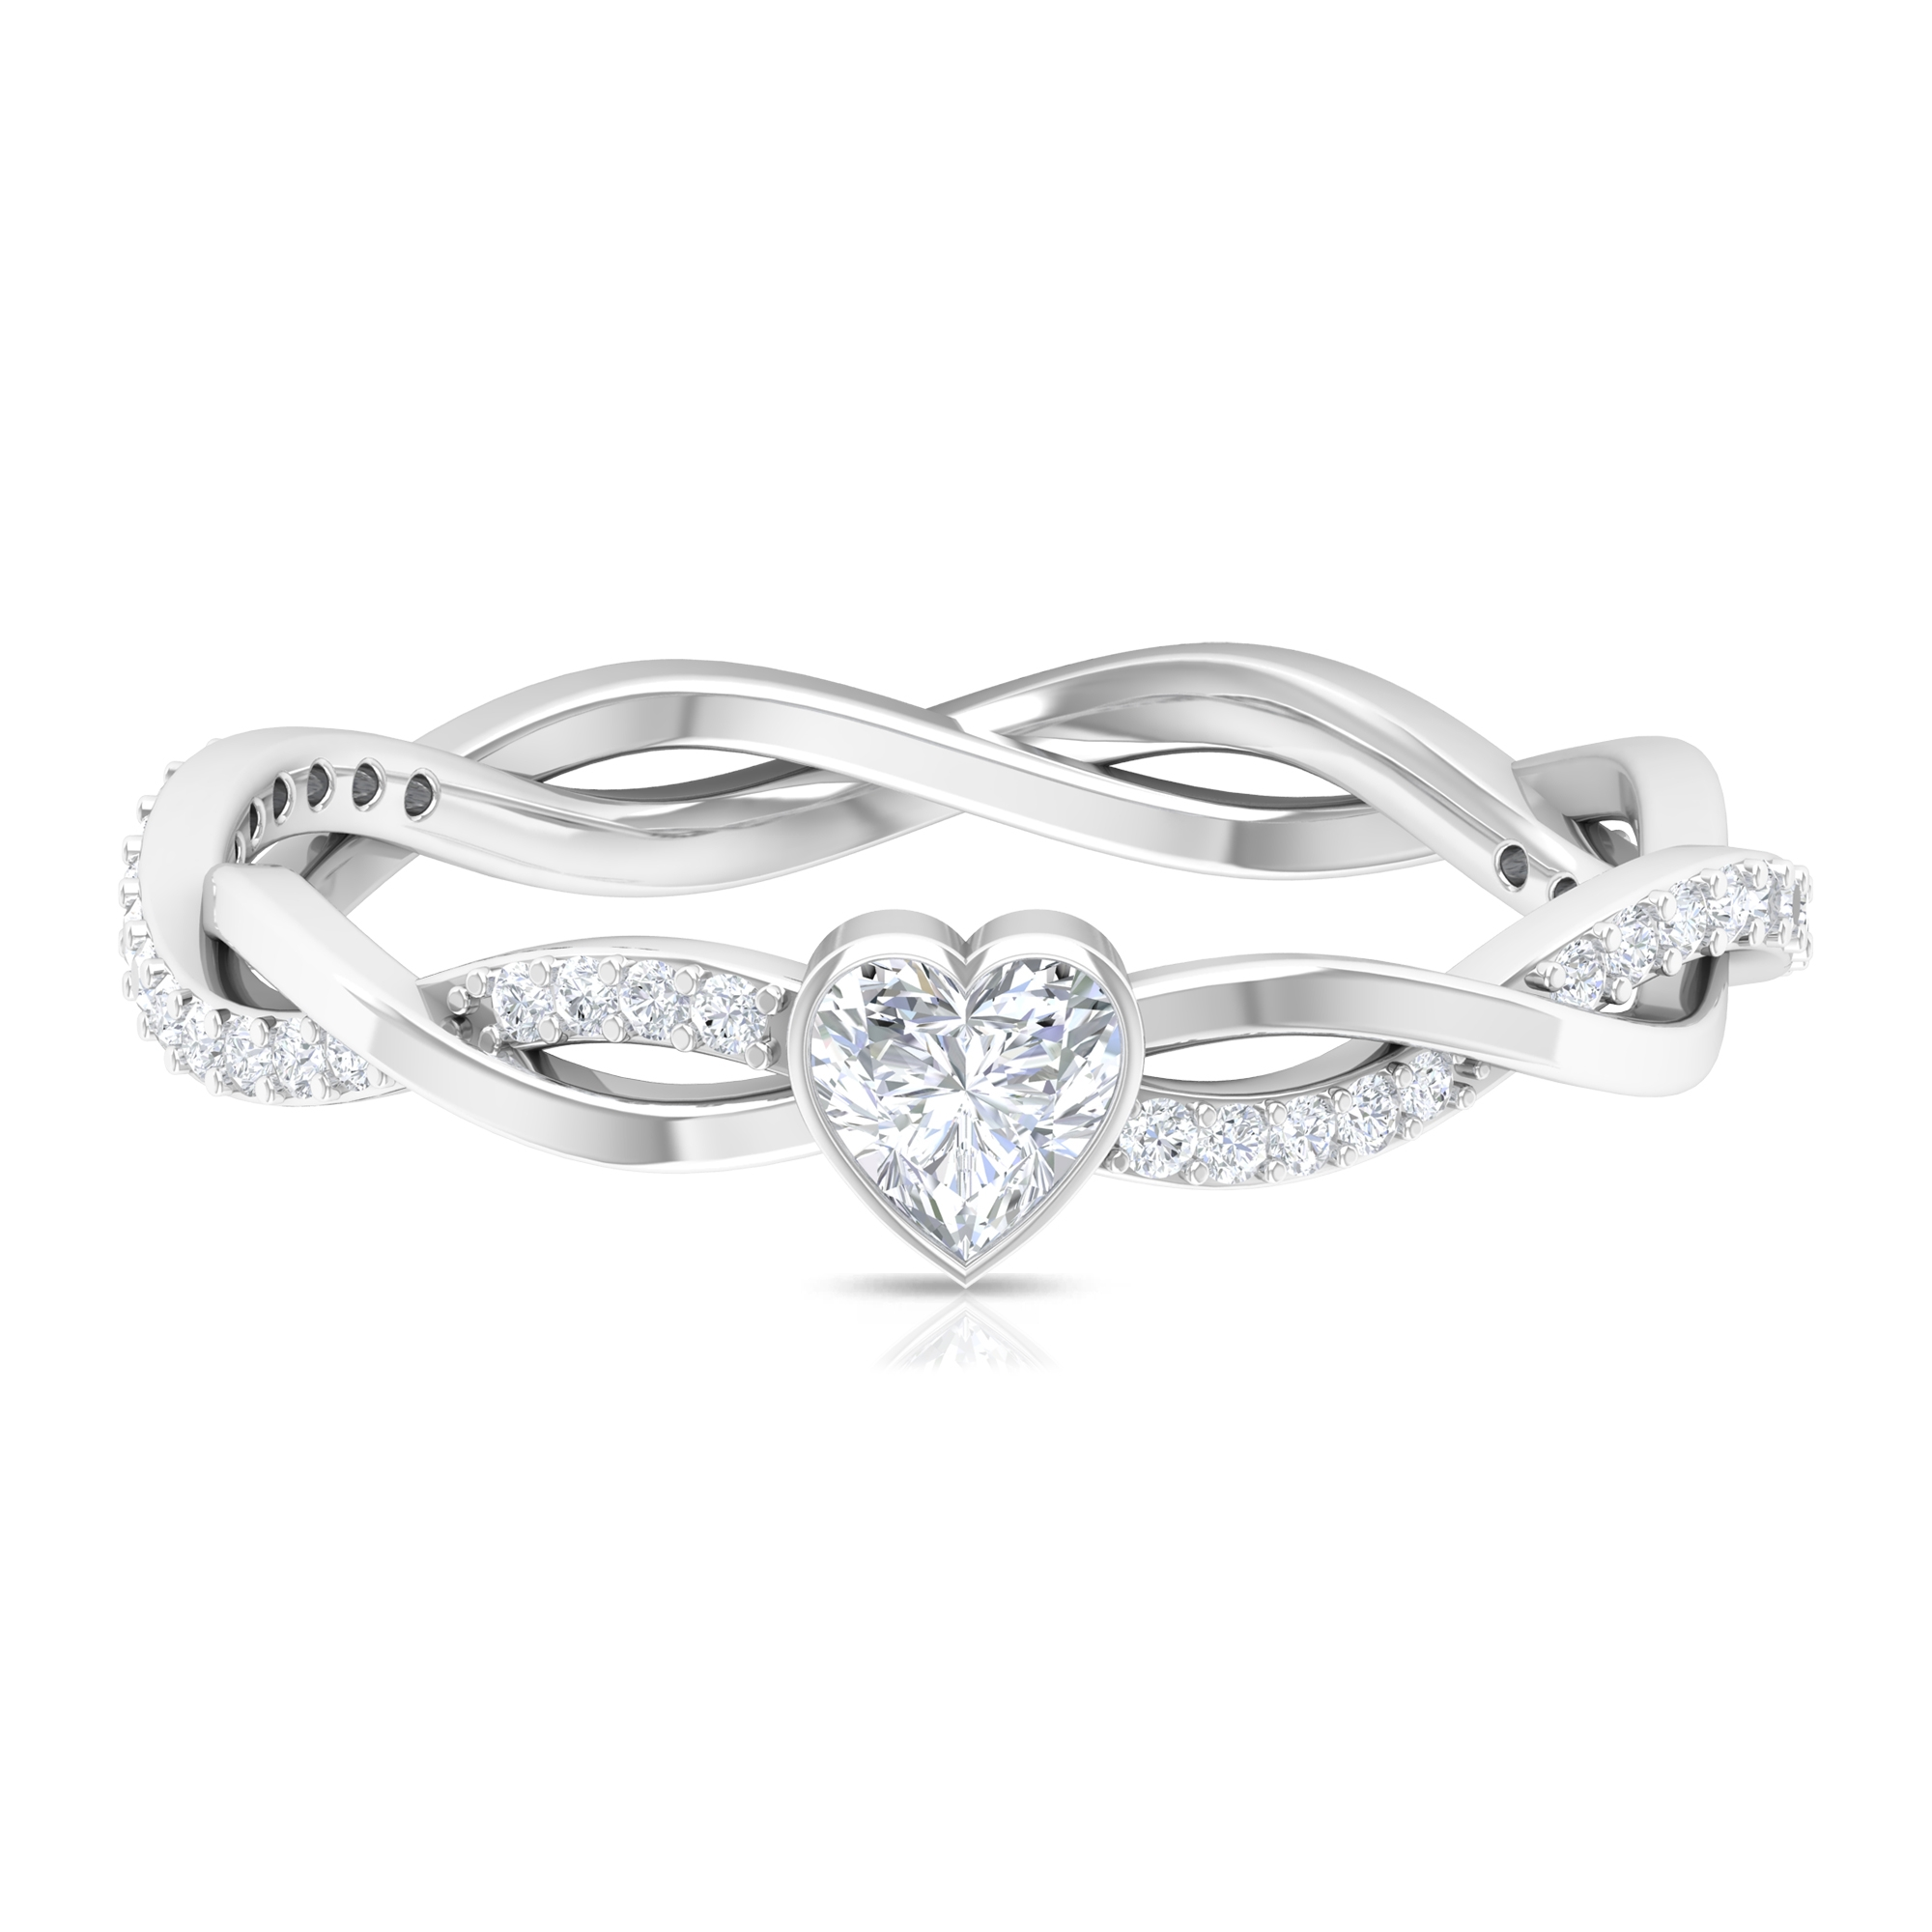 1/2 CT Bezel Set Solitaire and Braided Diamond Ring for Women